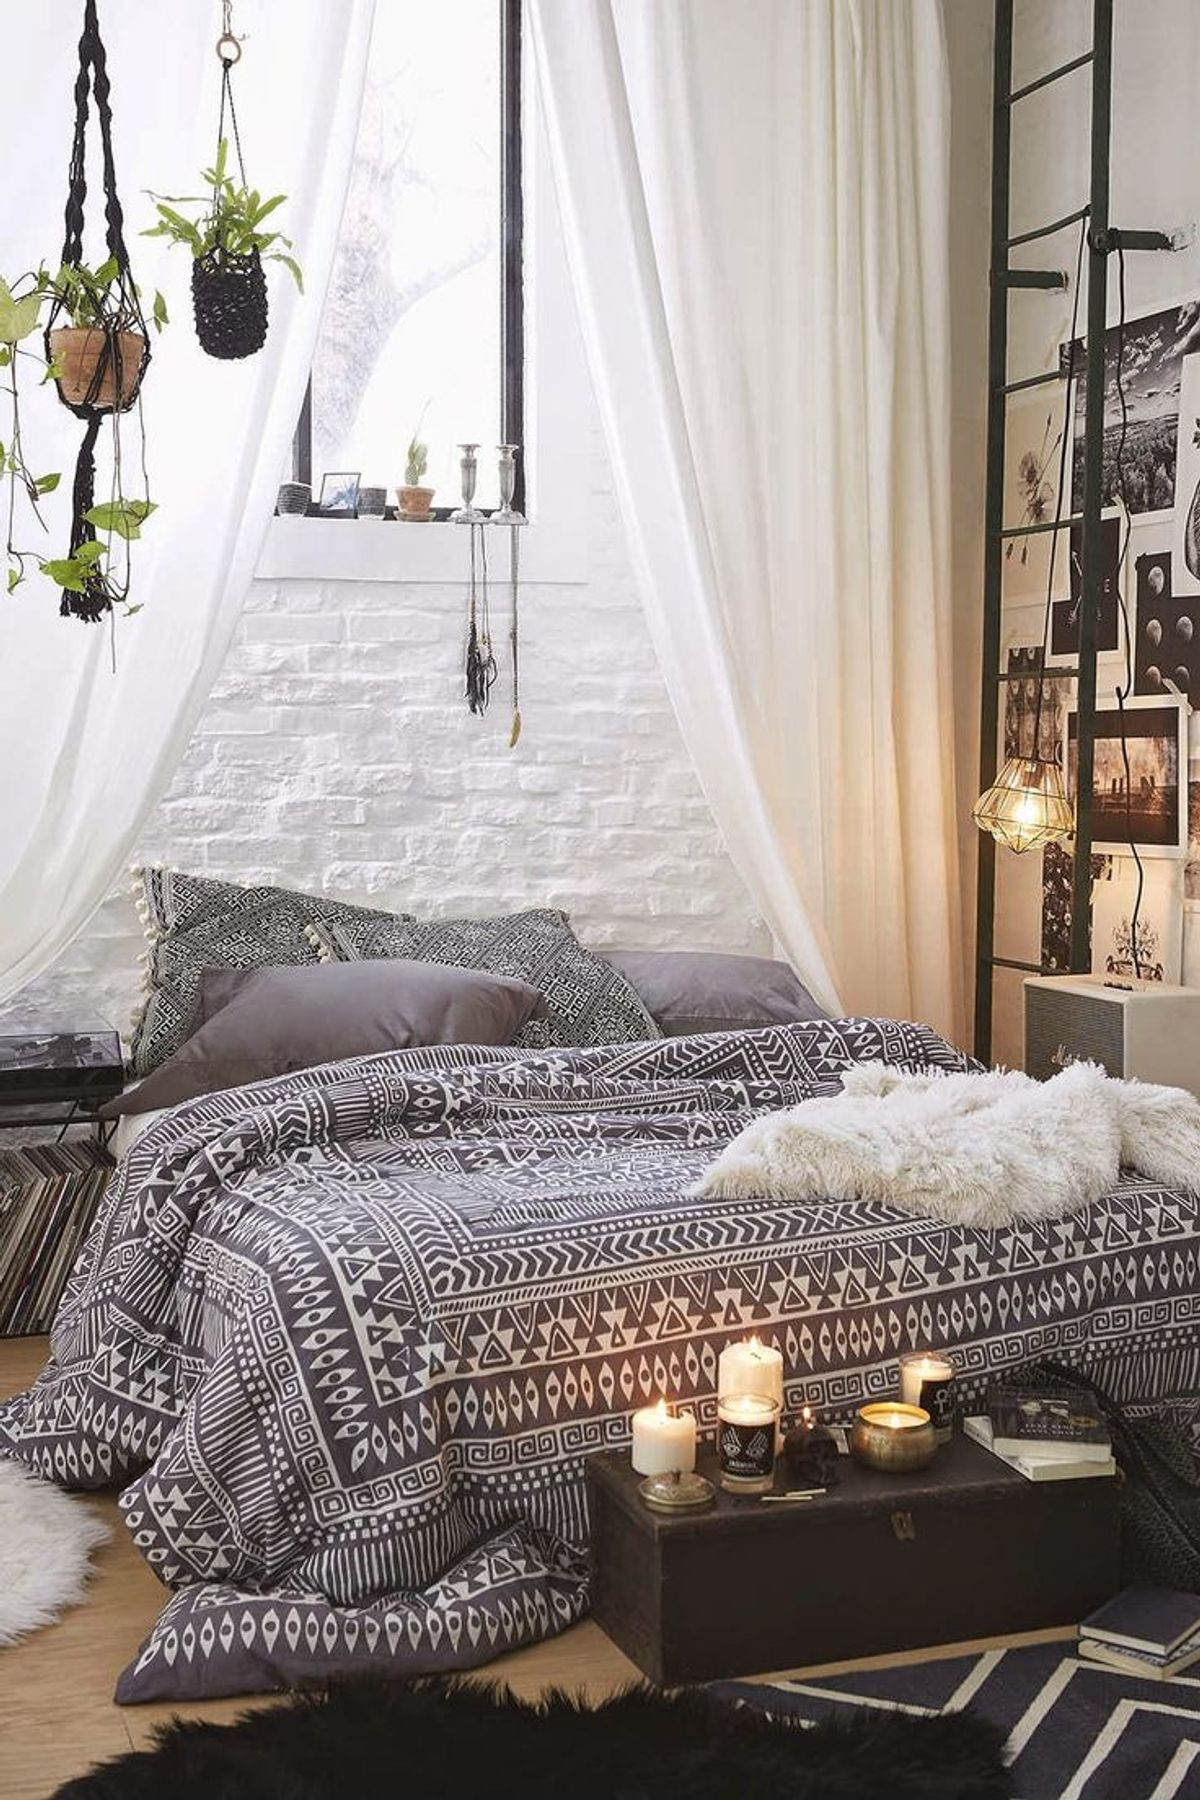 The Boho Girl's Guide To Apartment Shopping